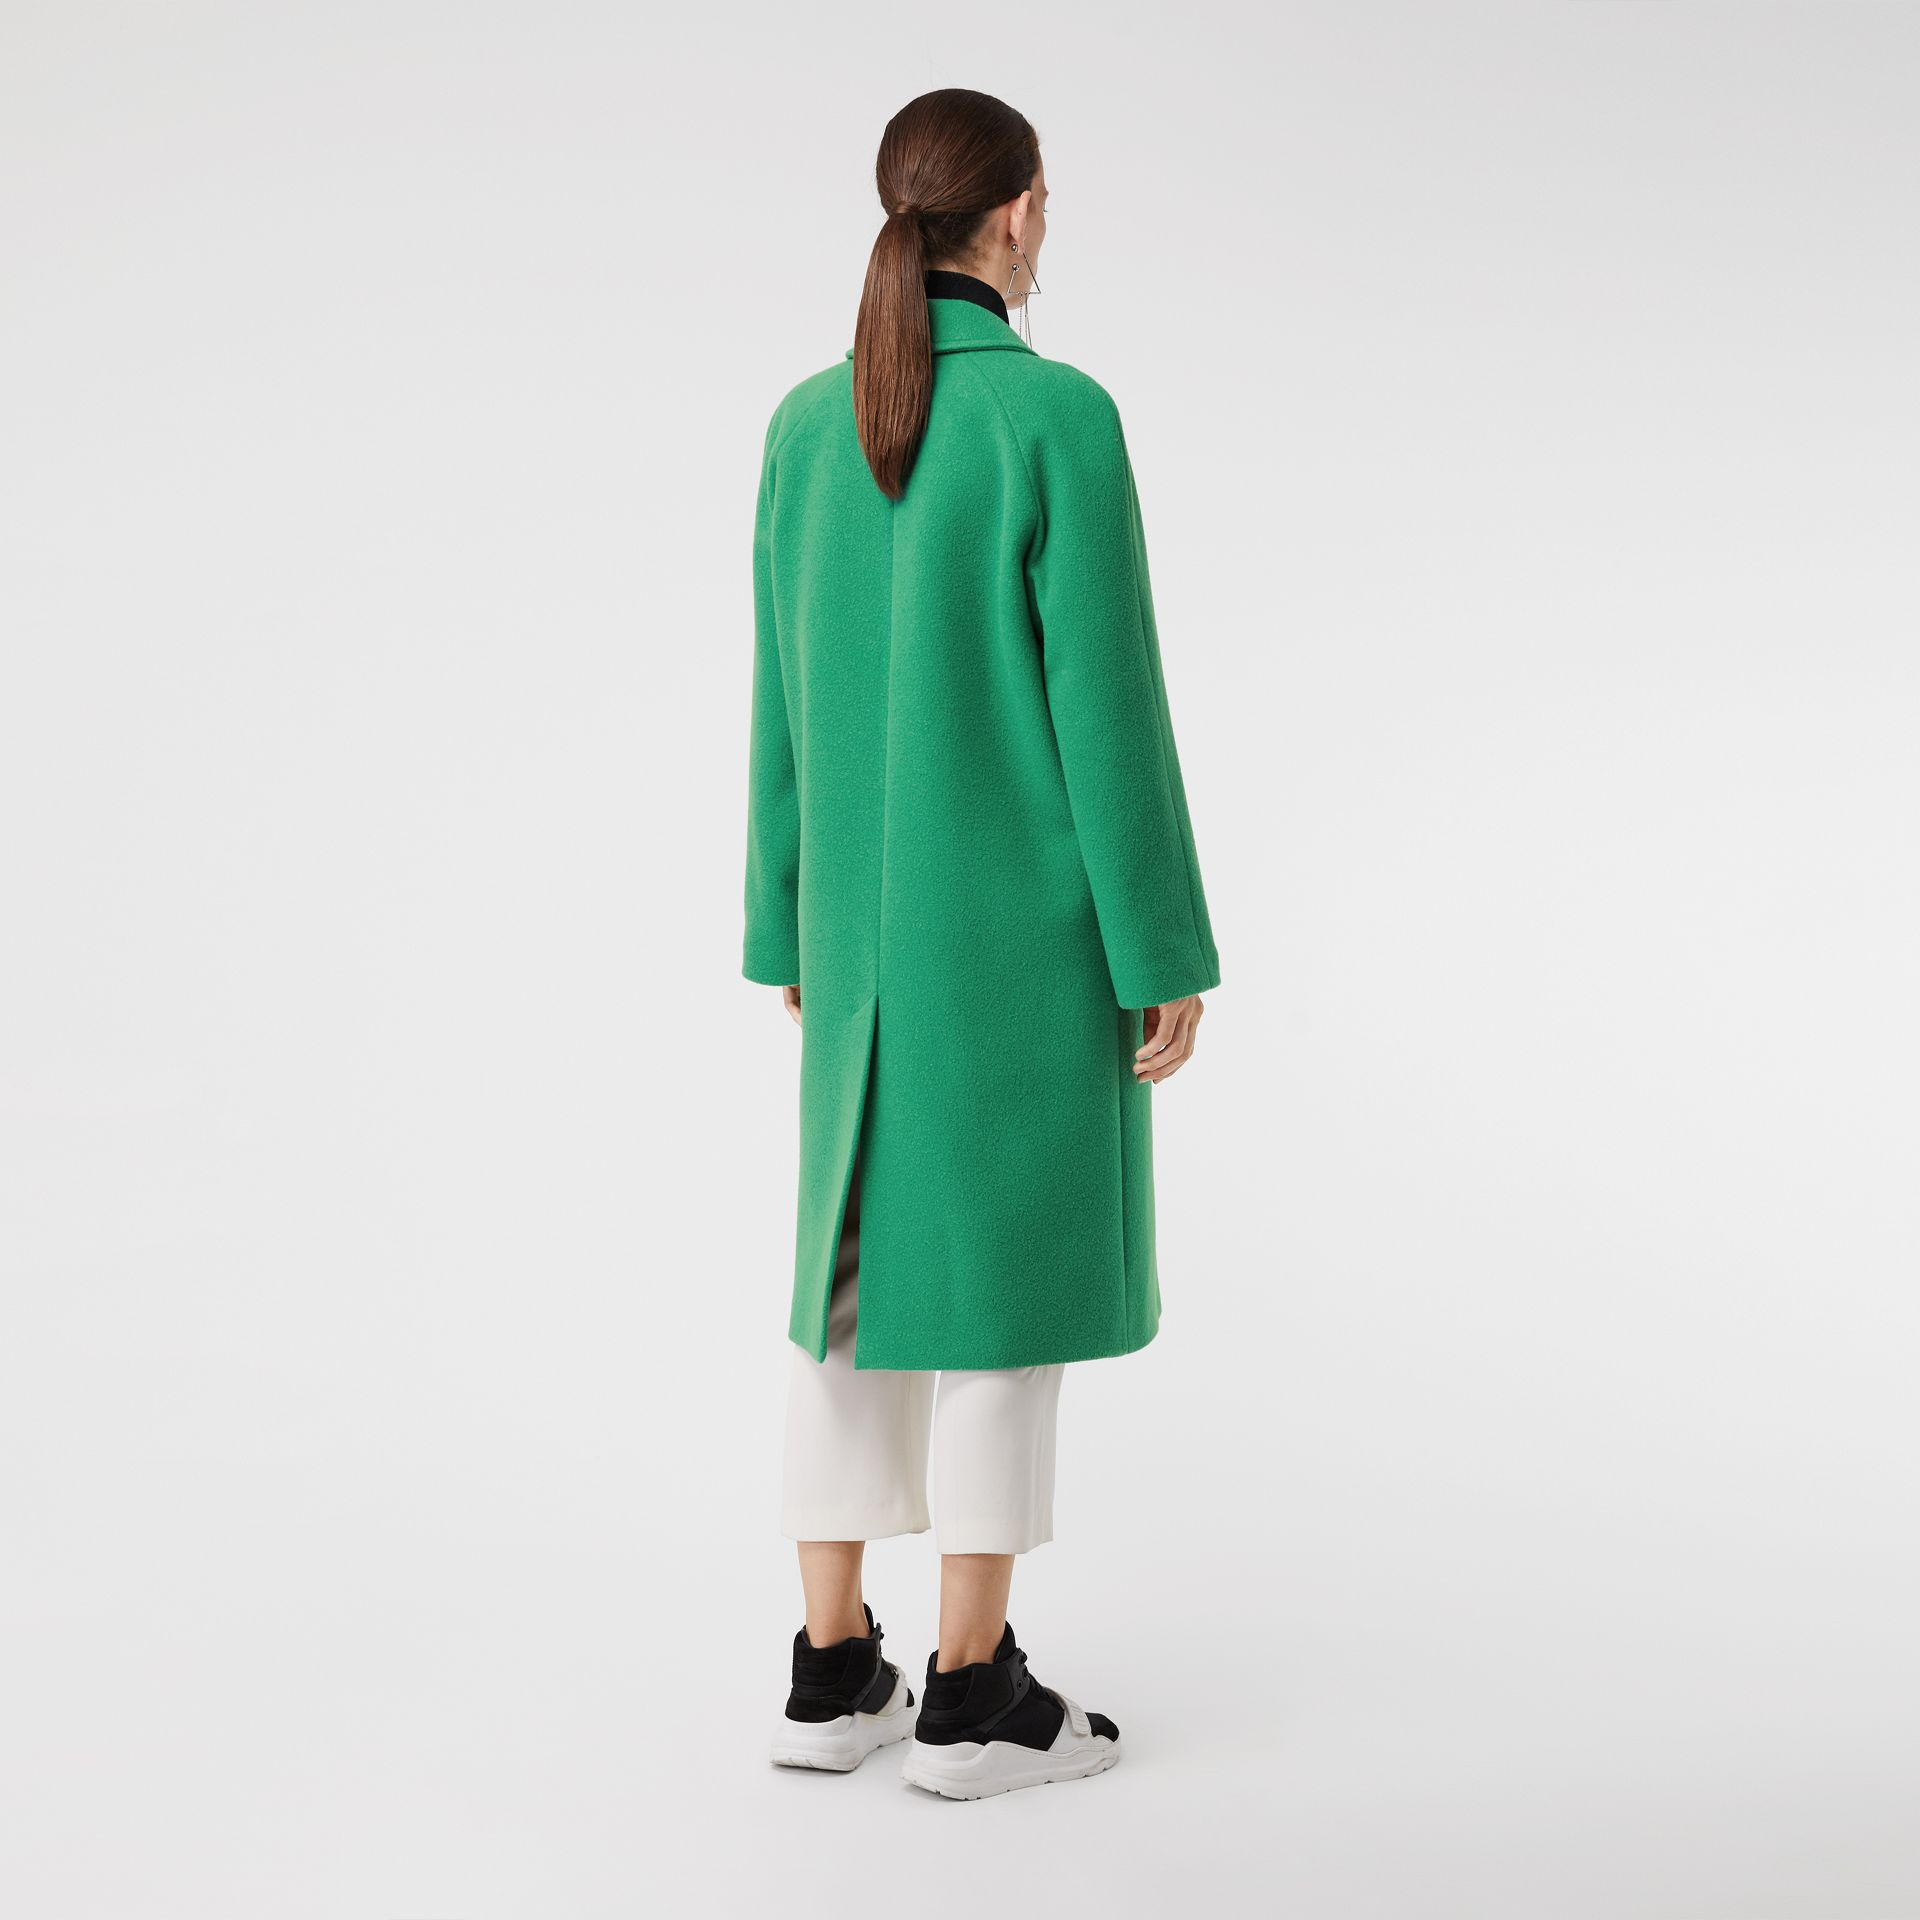 Wool Blend Tailored Coat in Bright Green - Women | Burberry United States - gallery image 2